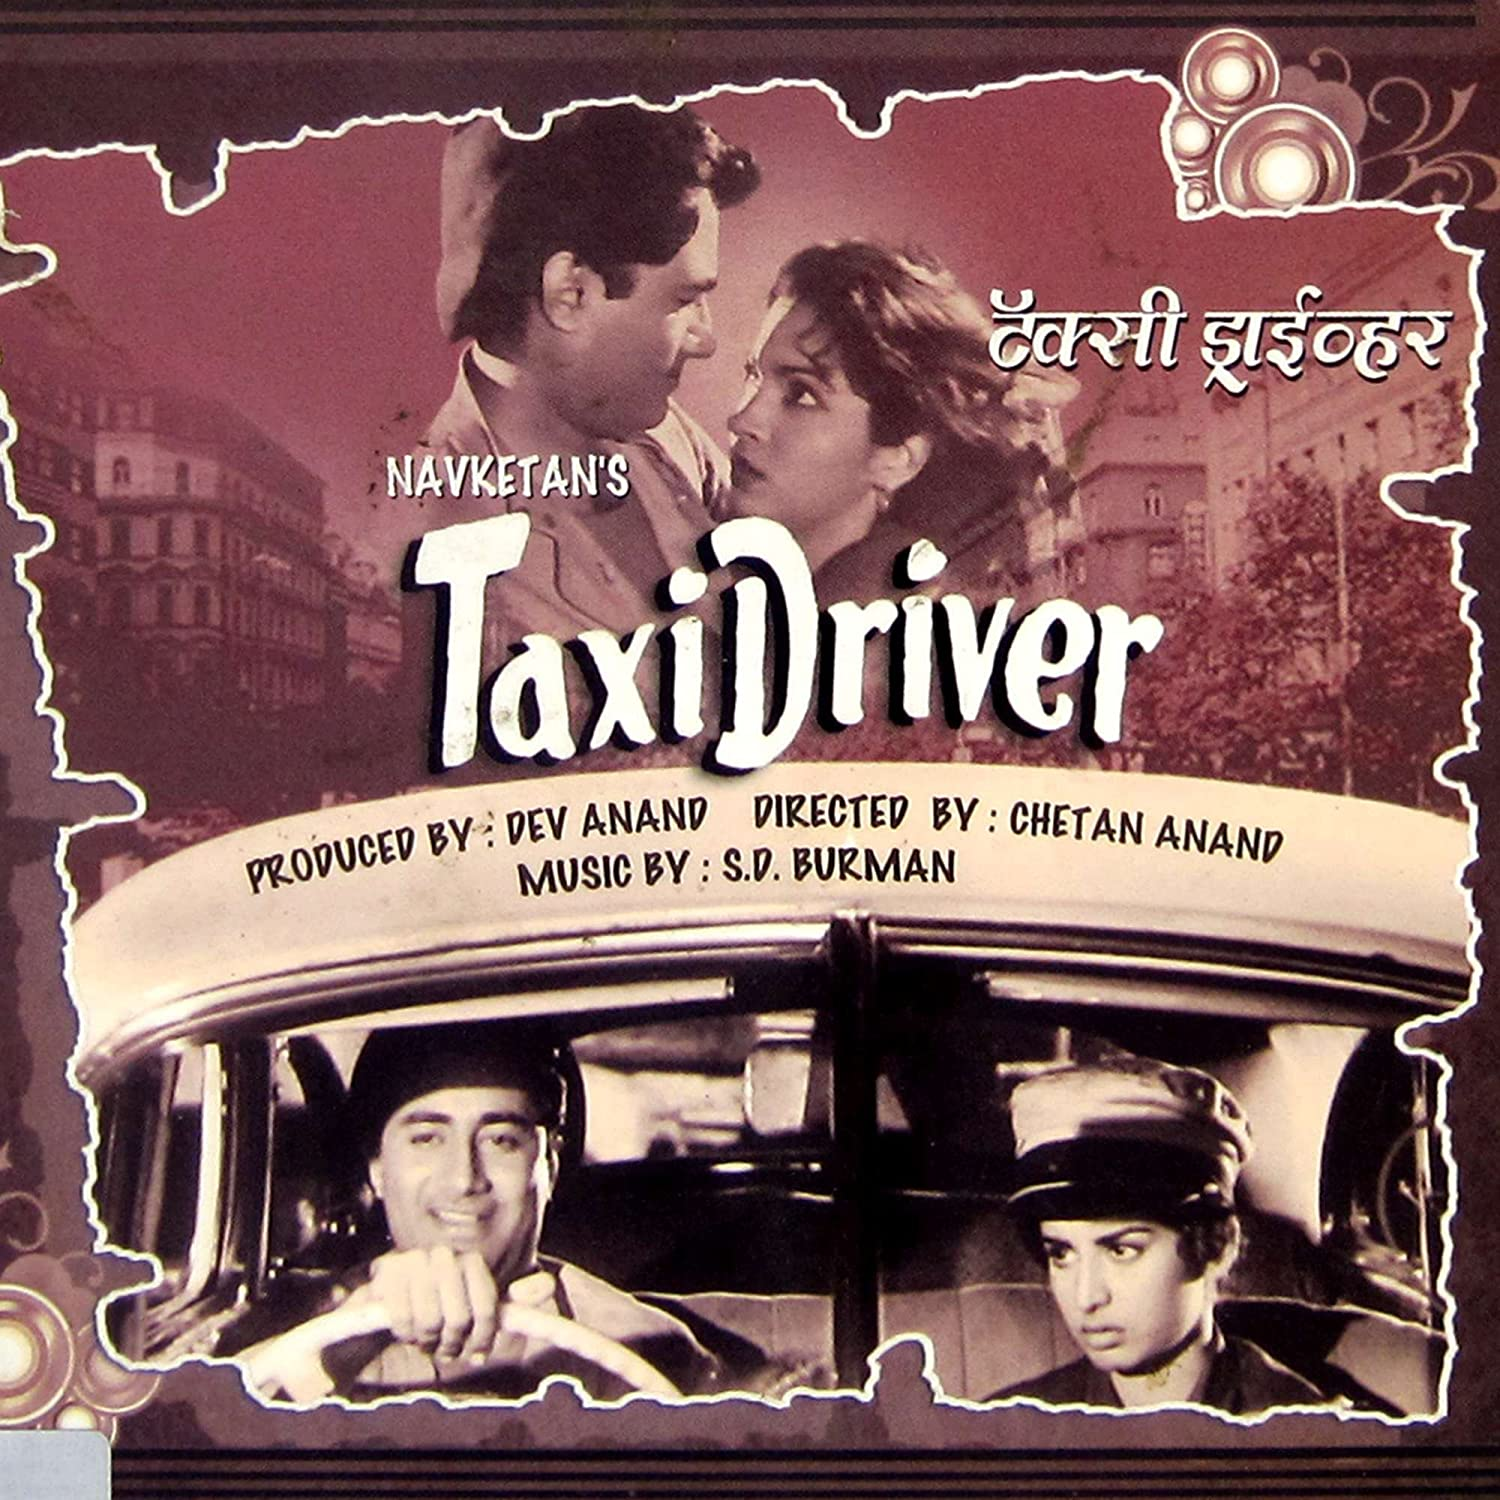 taxi driver 1954 full movie download